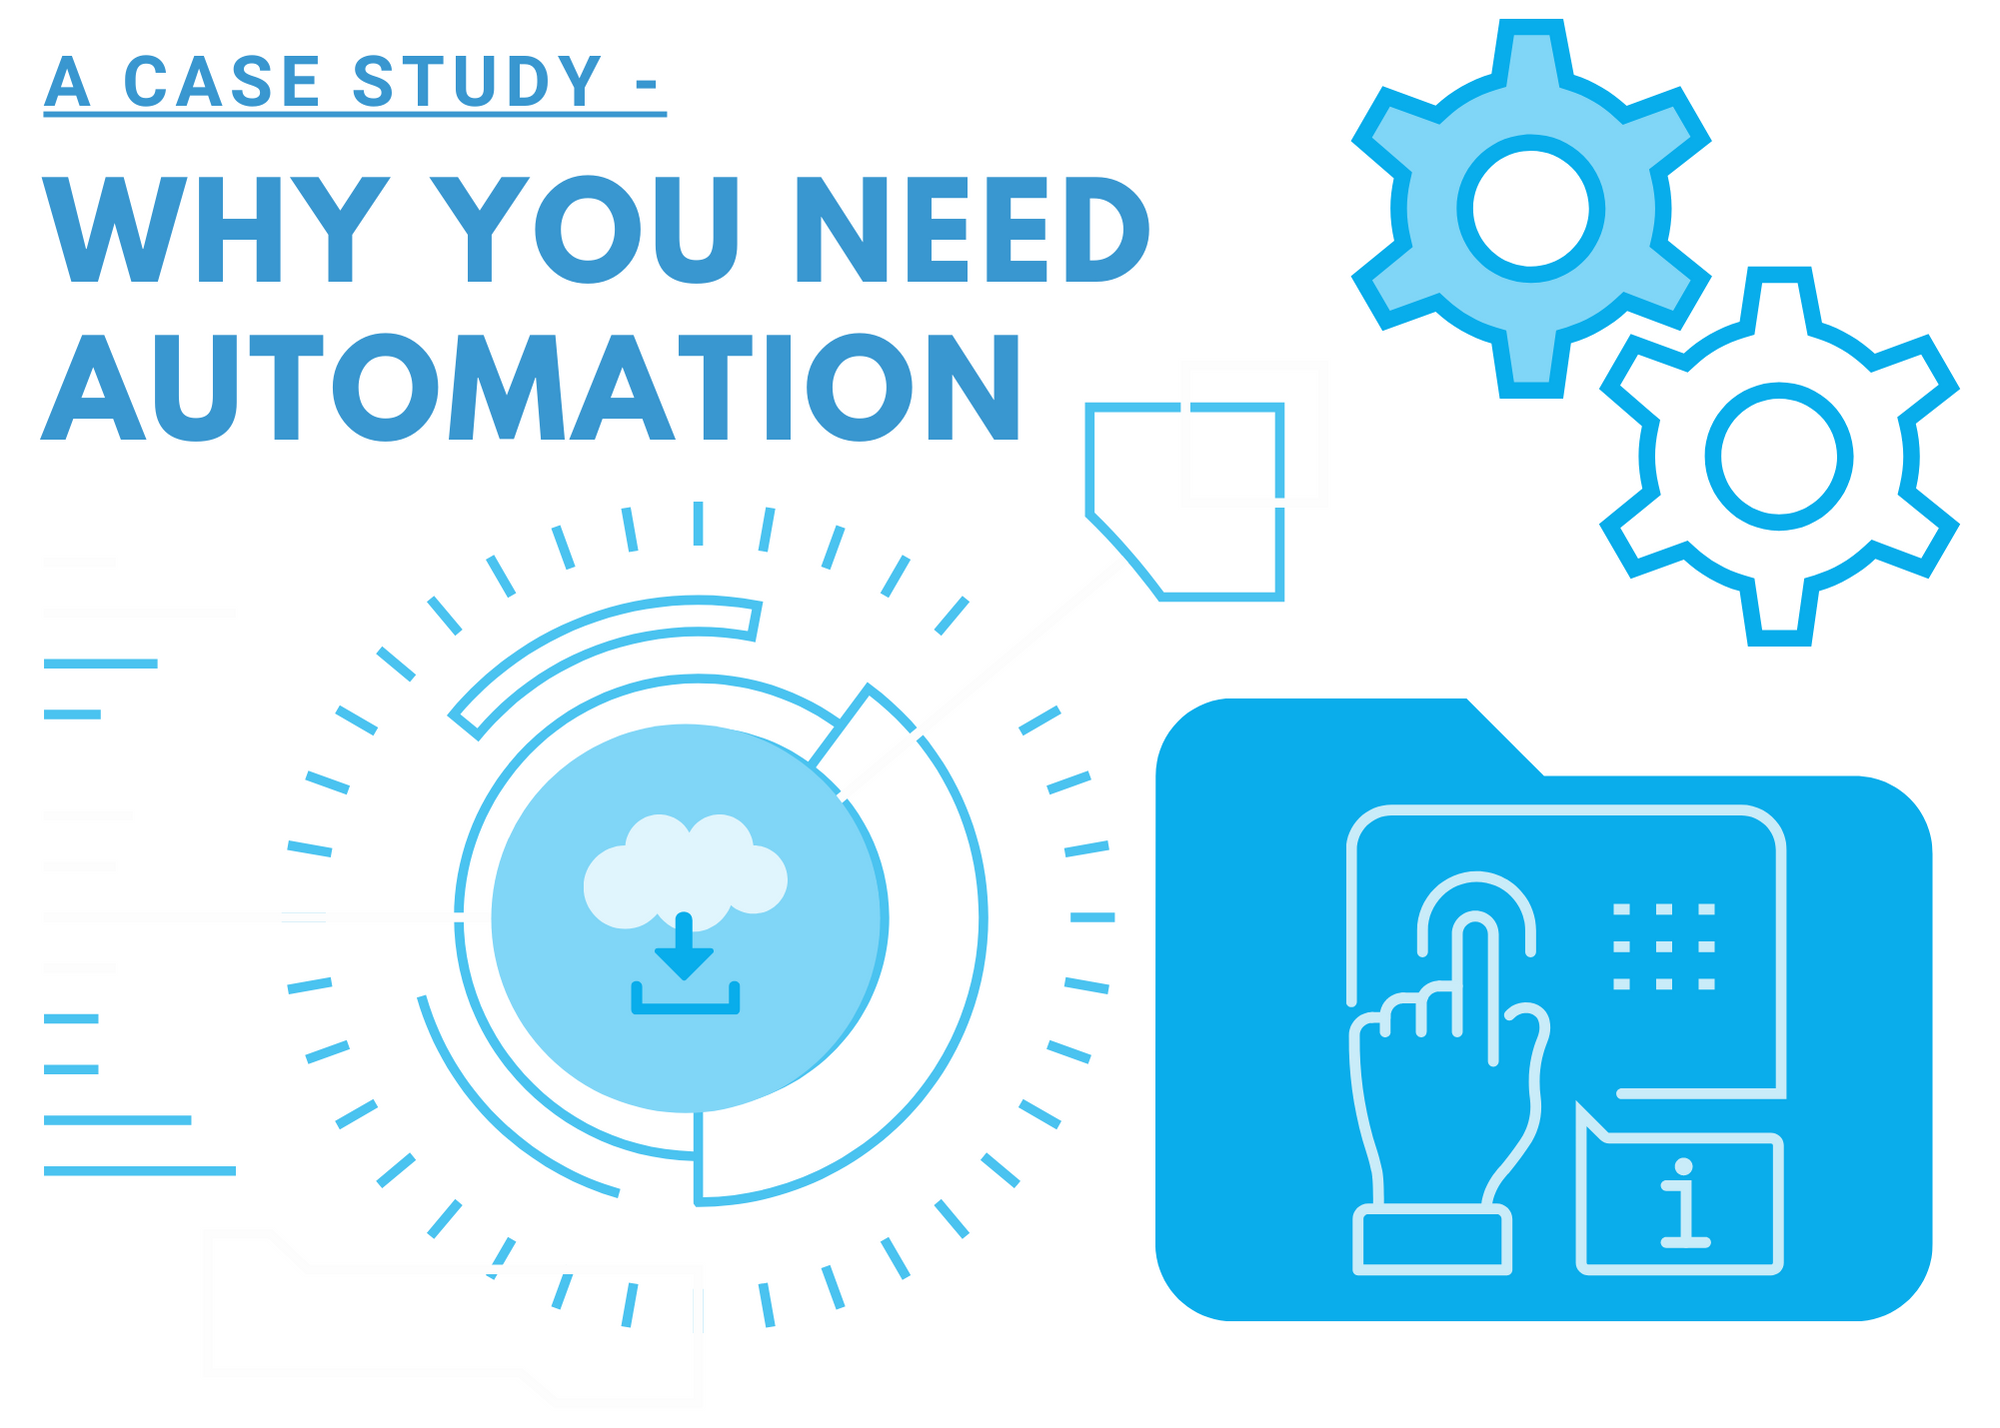 automation is important to reduce human error and save time